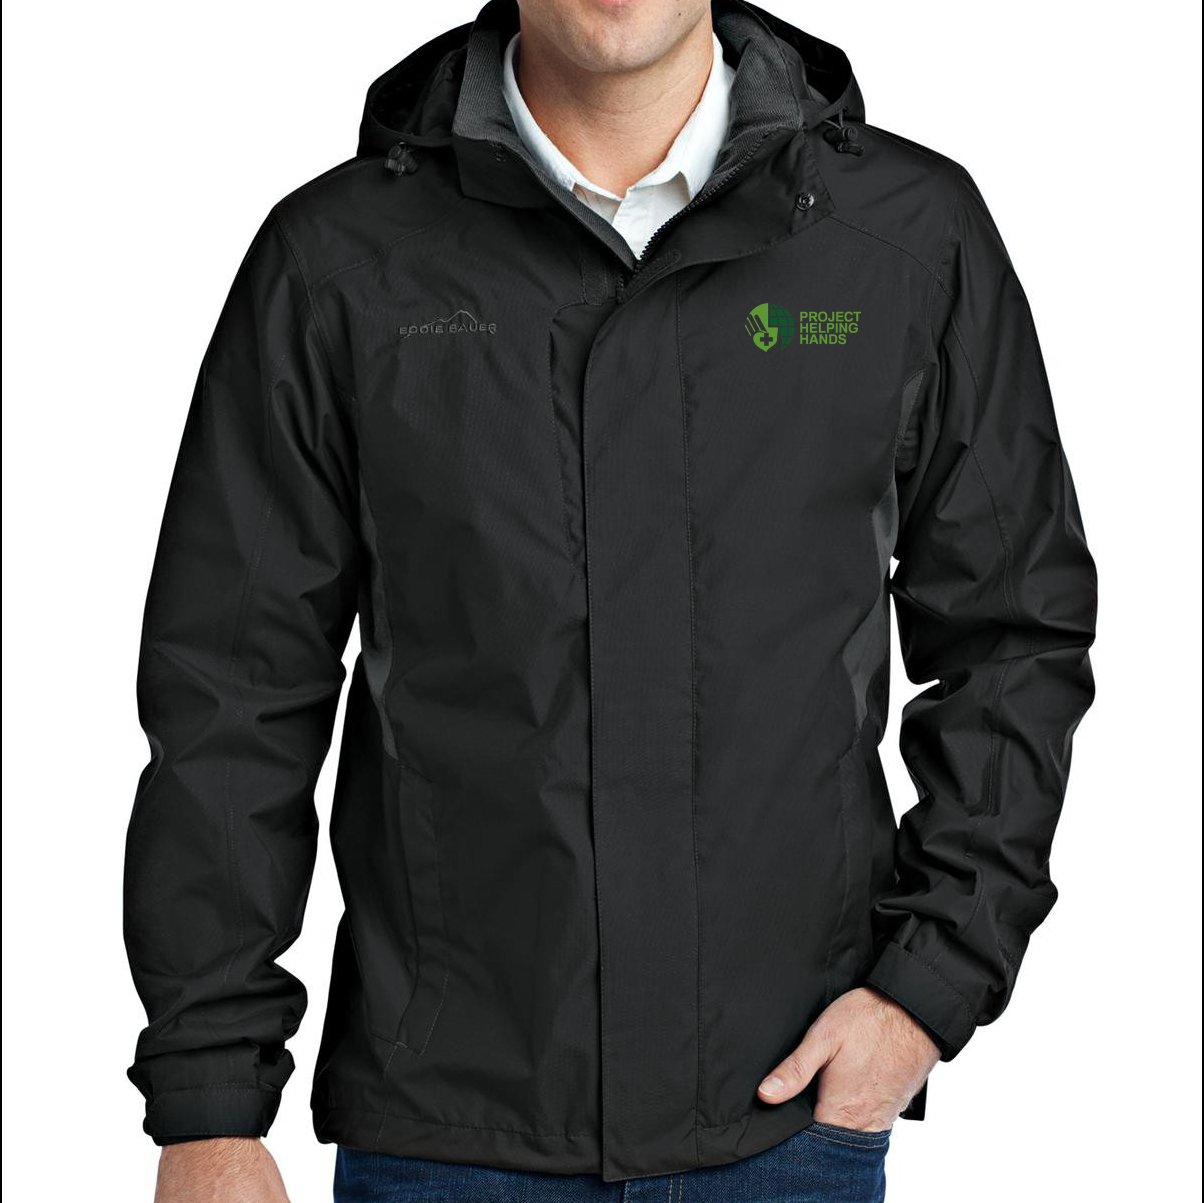 Men's Eddie Bauer Rain Jacket